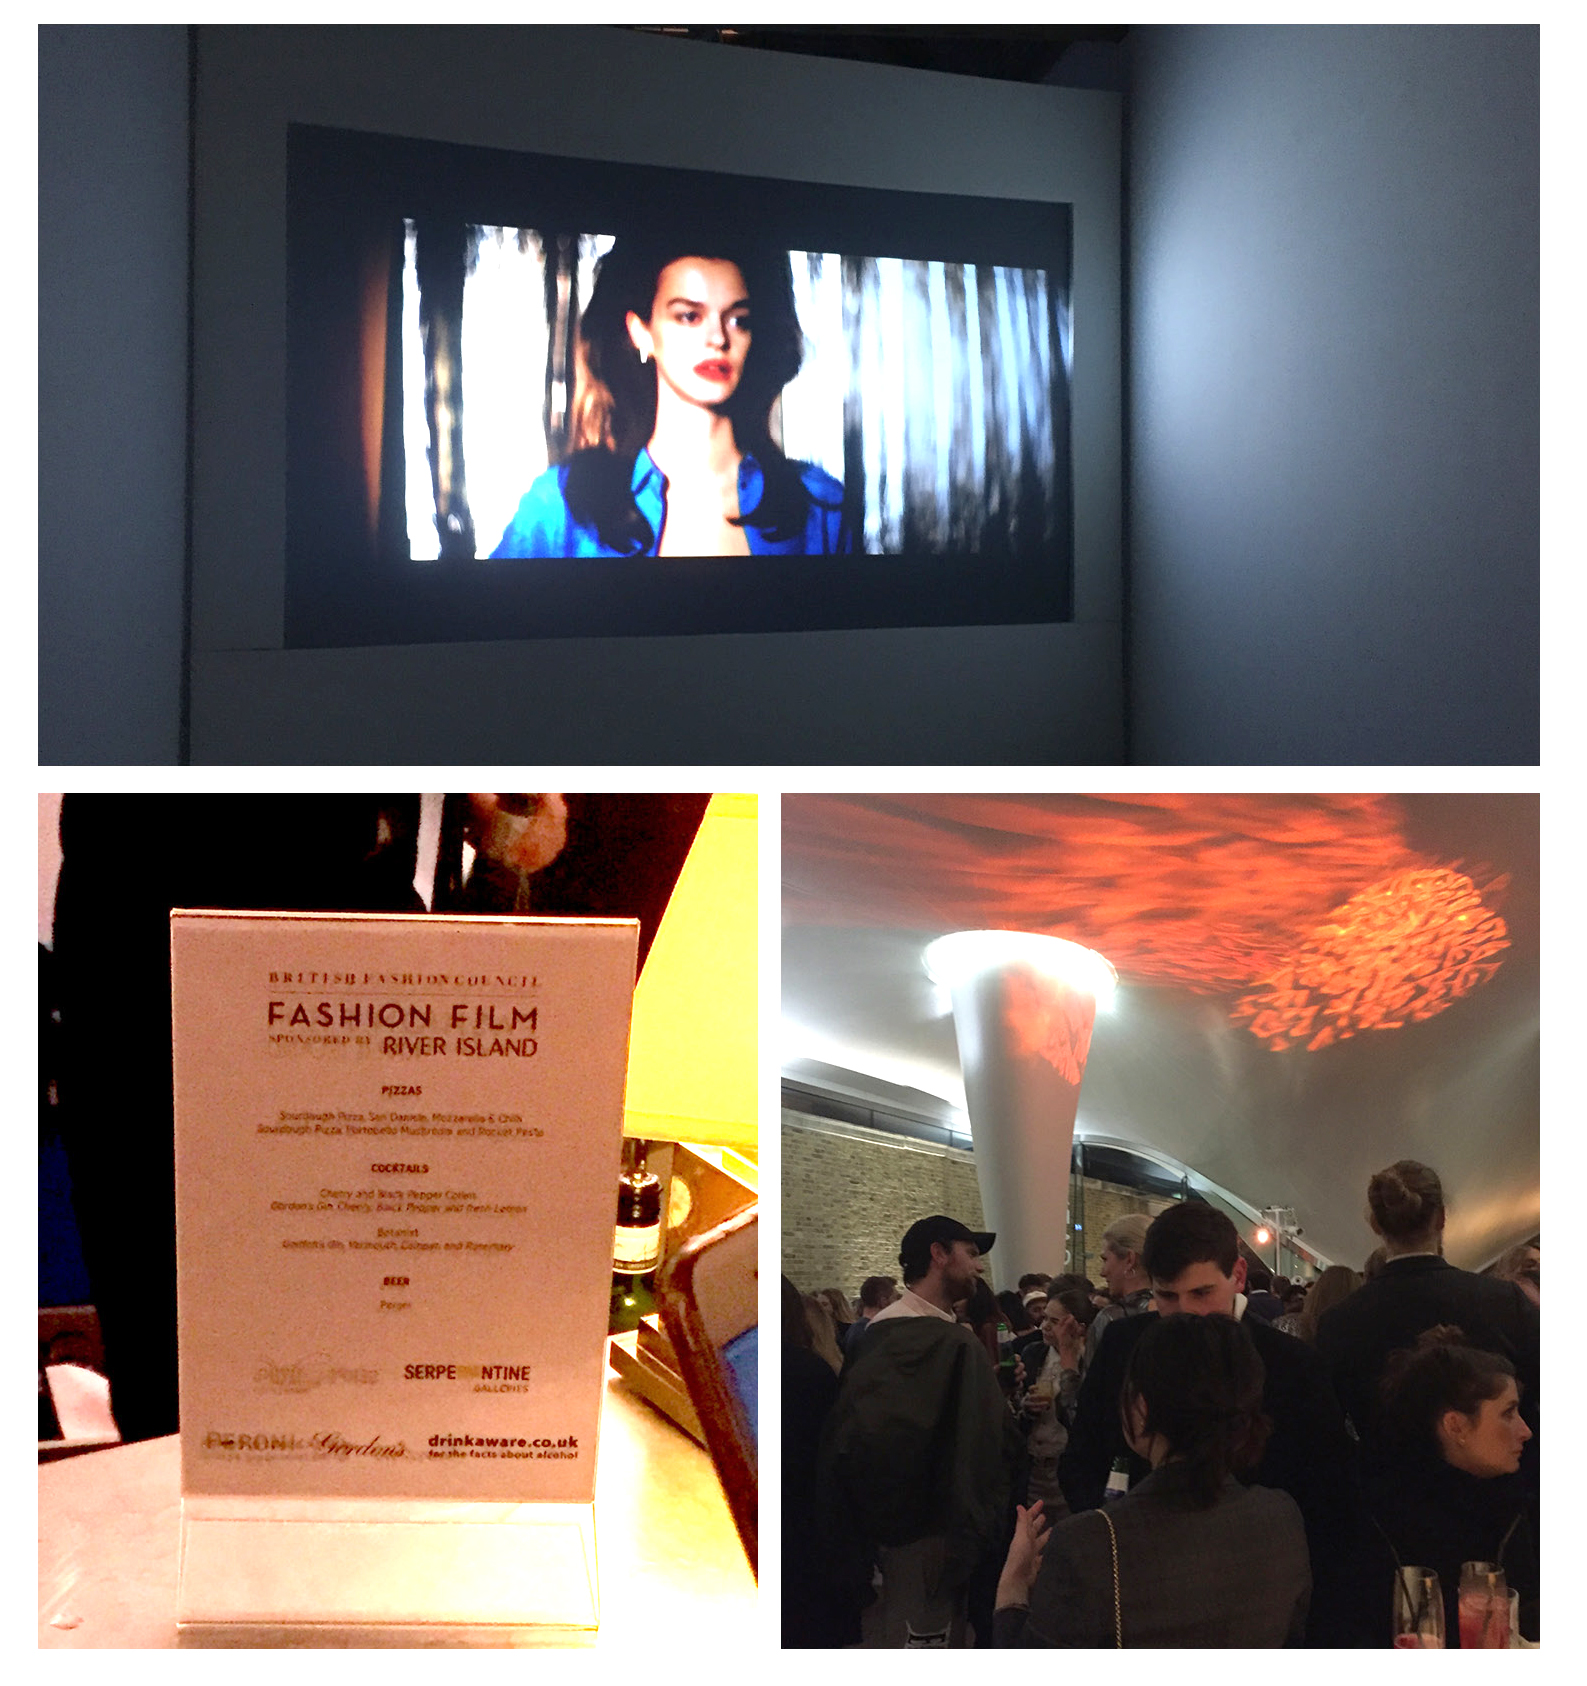 A great ending to the day at the BFC Fashion Film Screening at the Serpentine Gallery, Hyde Park